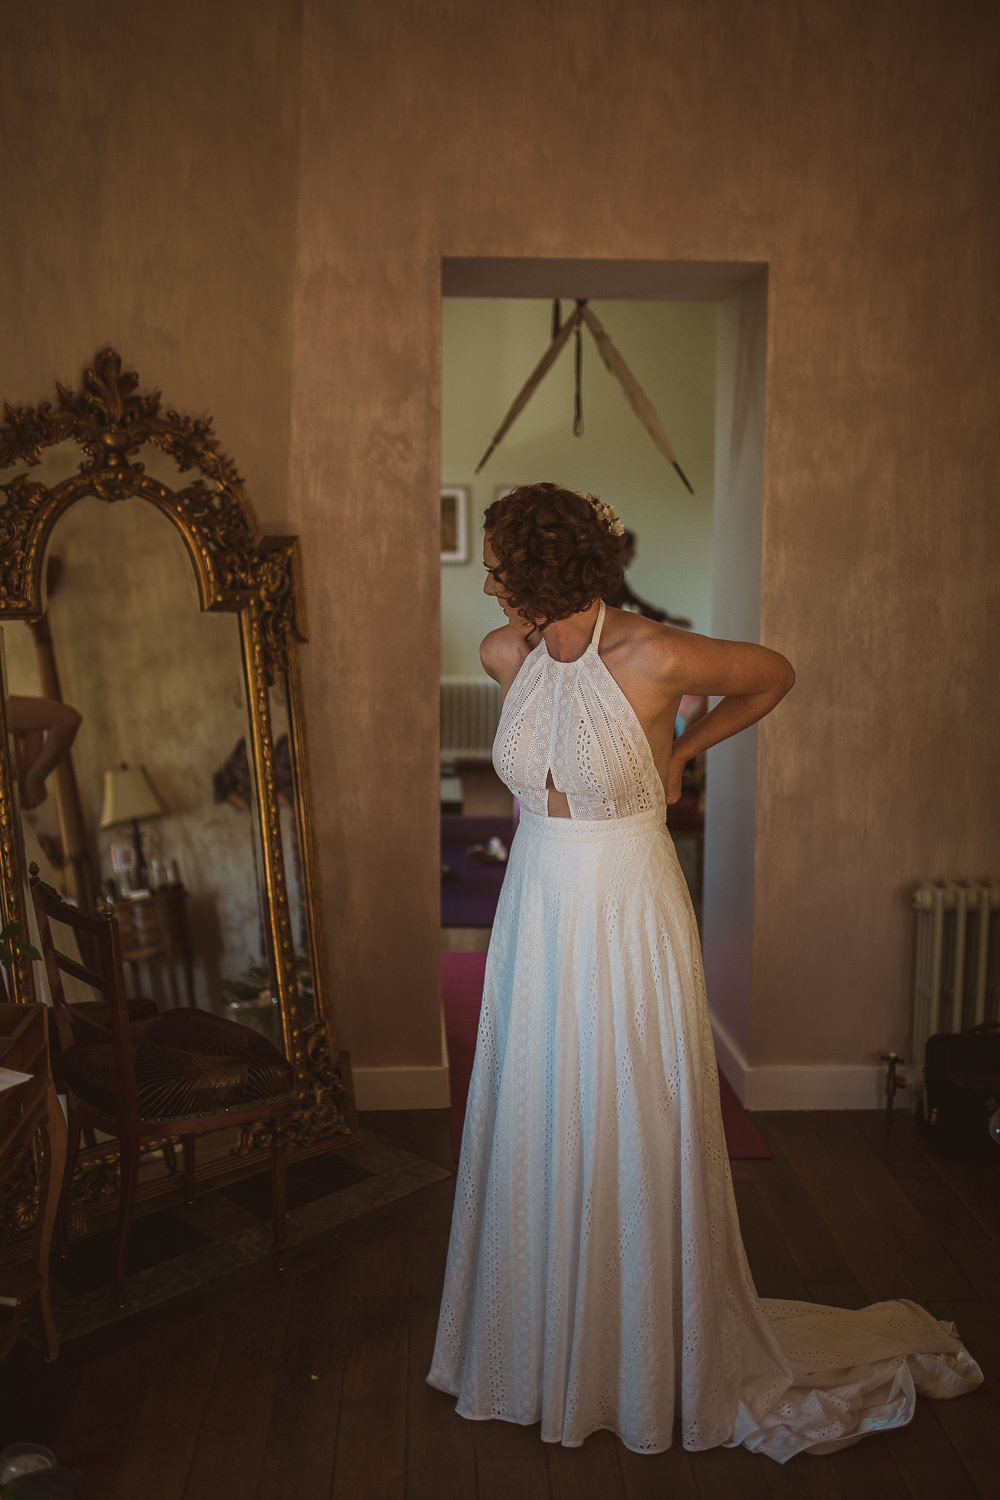 Bride Bridal Dress Gown Sottero and Midgley Halterneck Embroidery Anglaise Escape To The Chateau Wedding The Springles